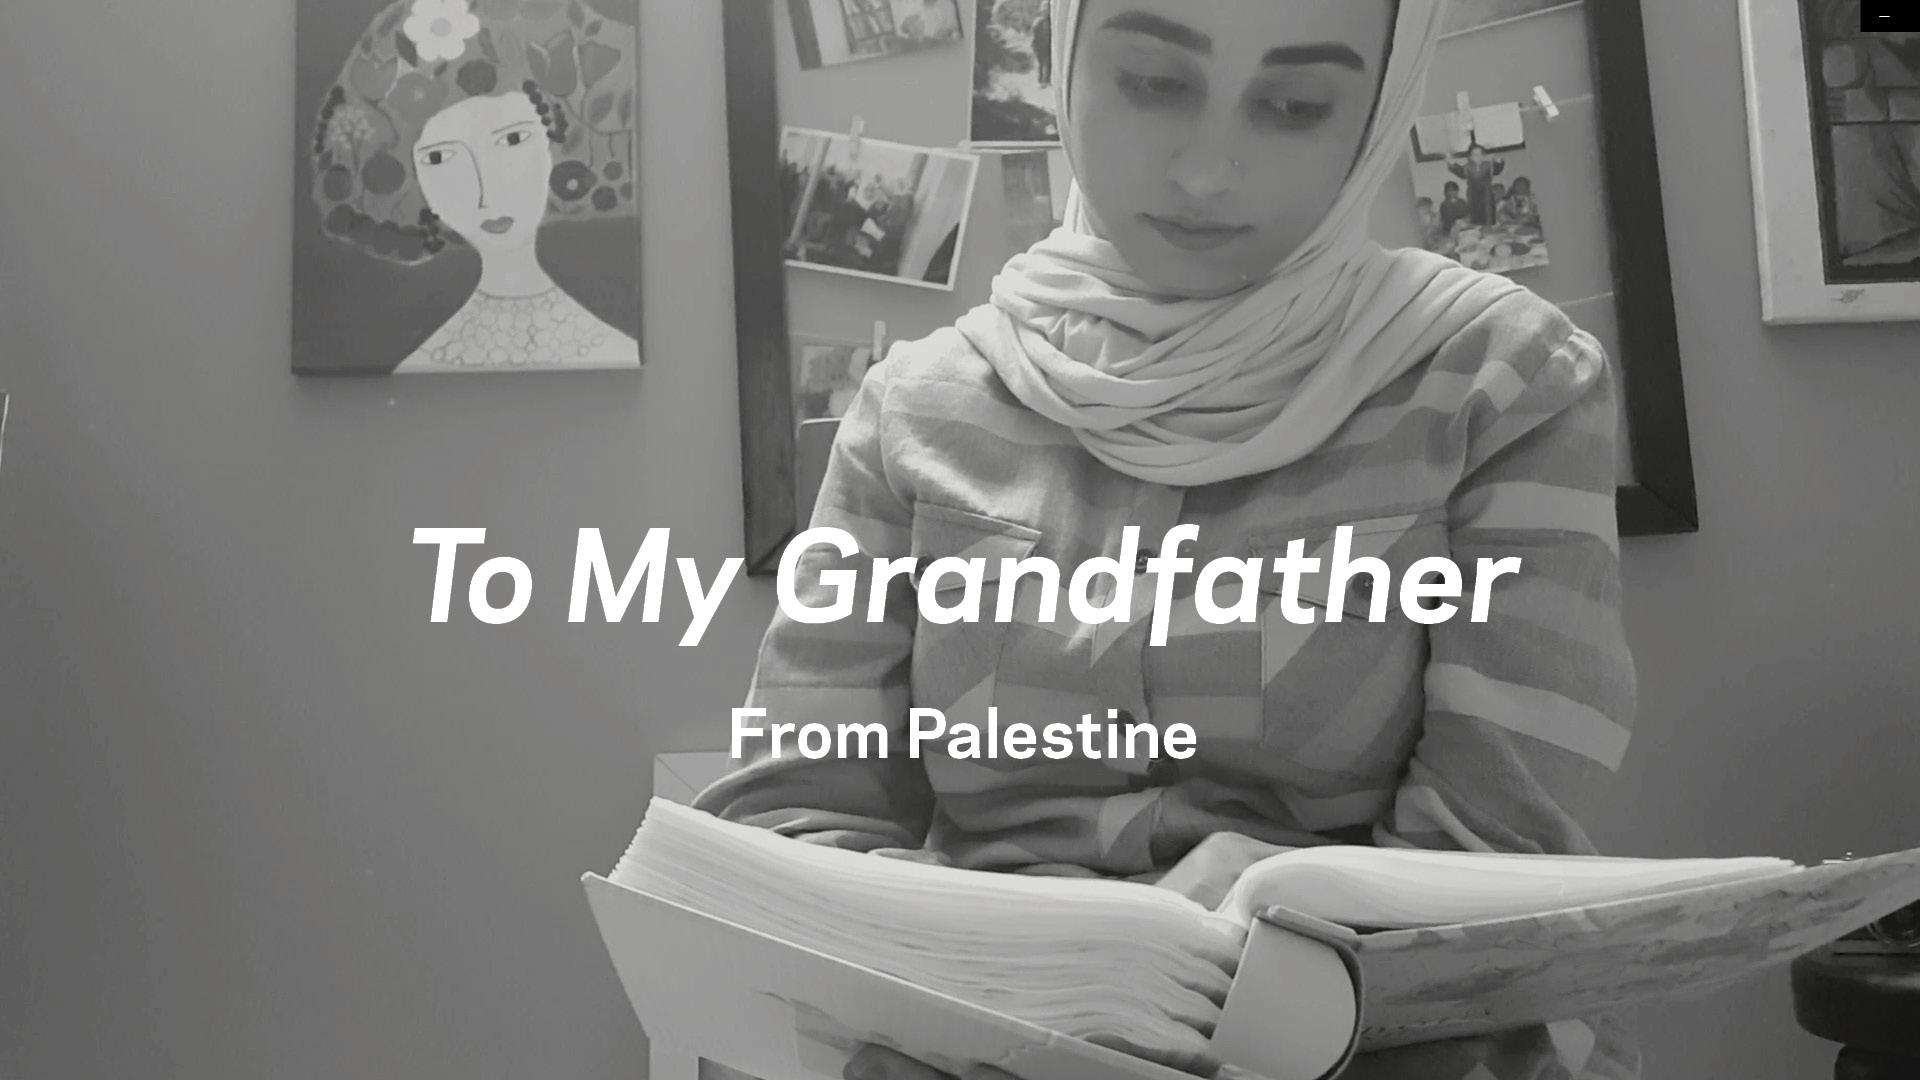 To My Grandfather